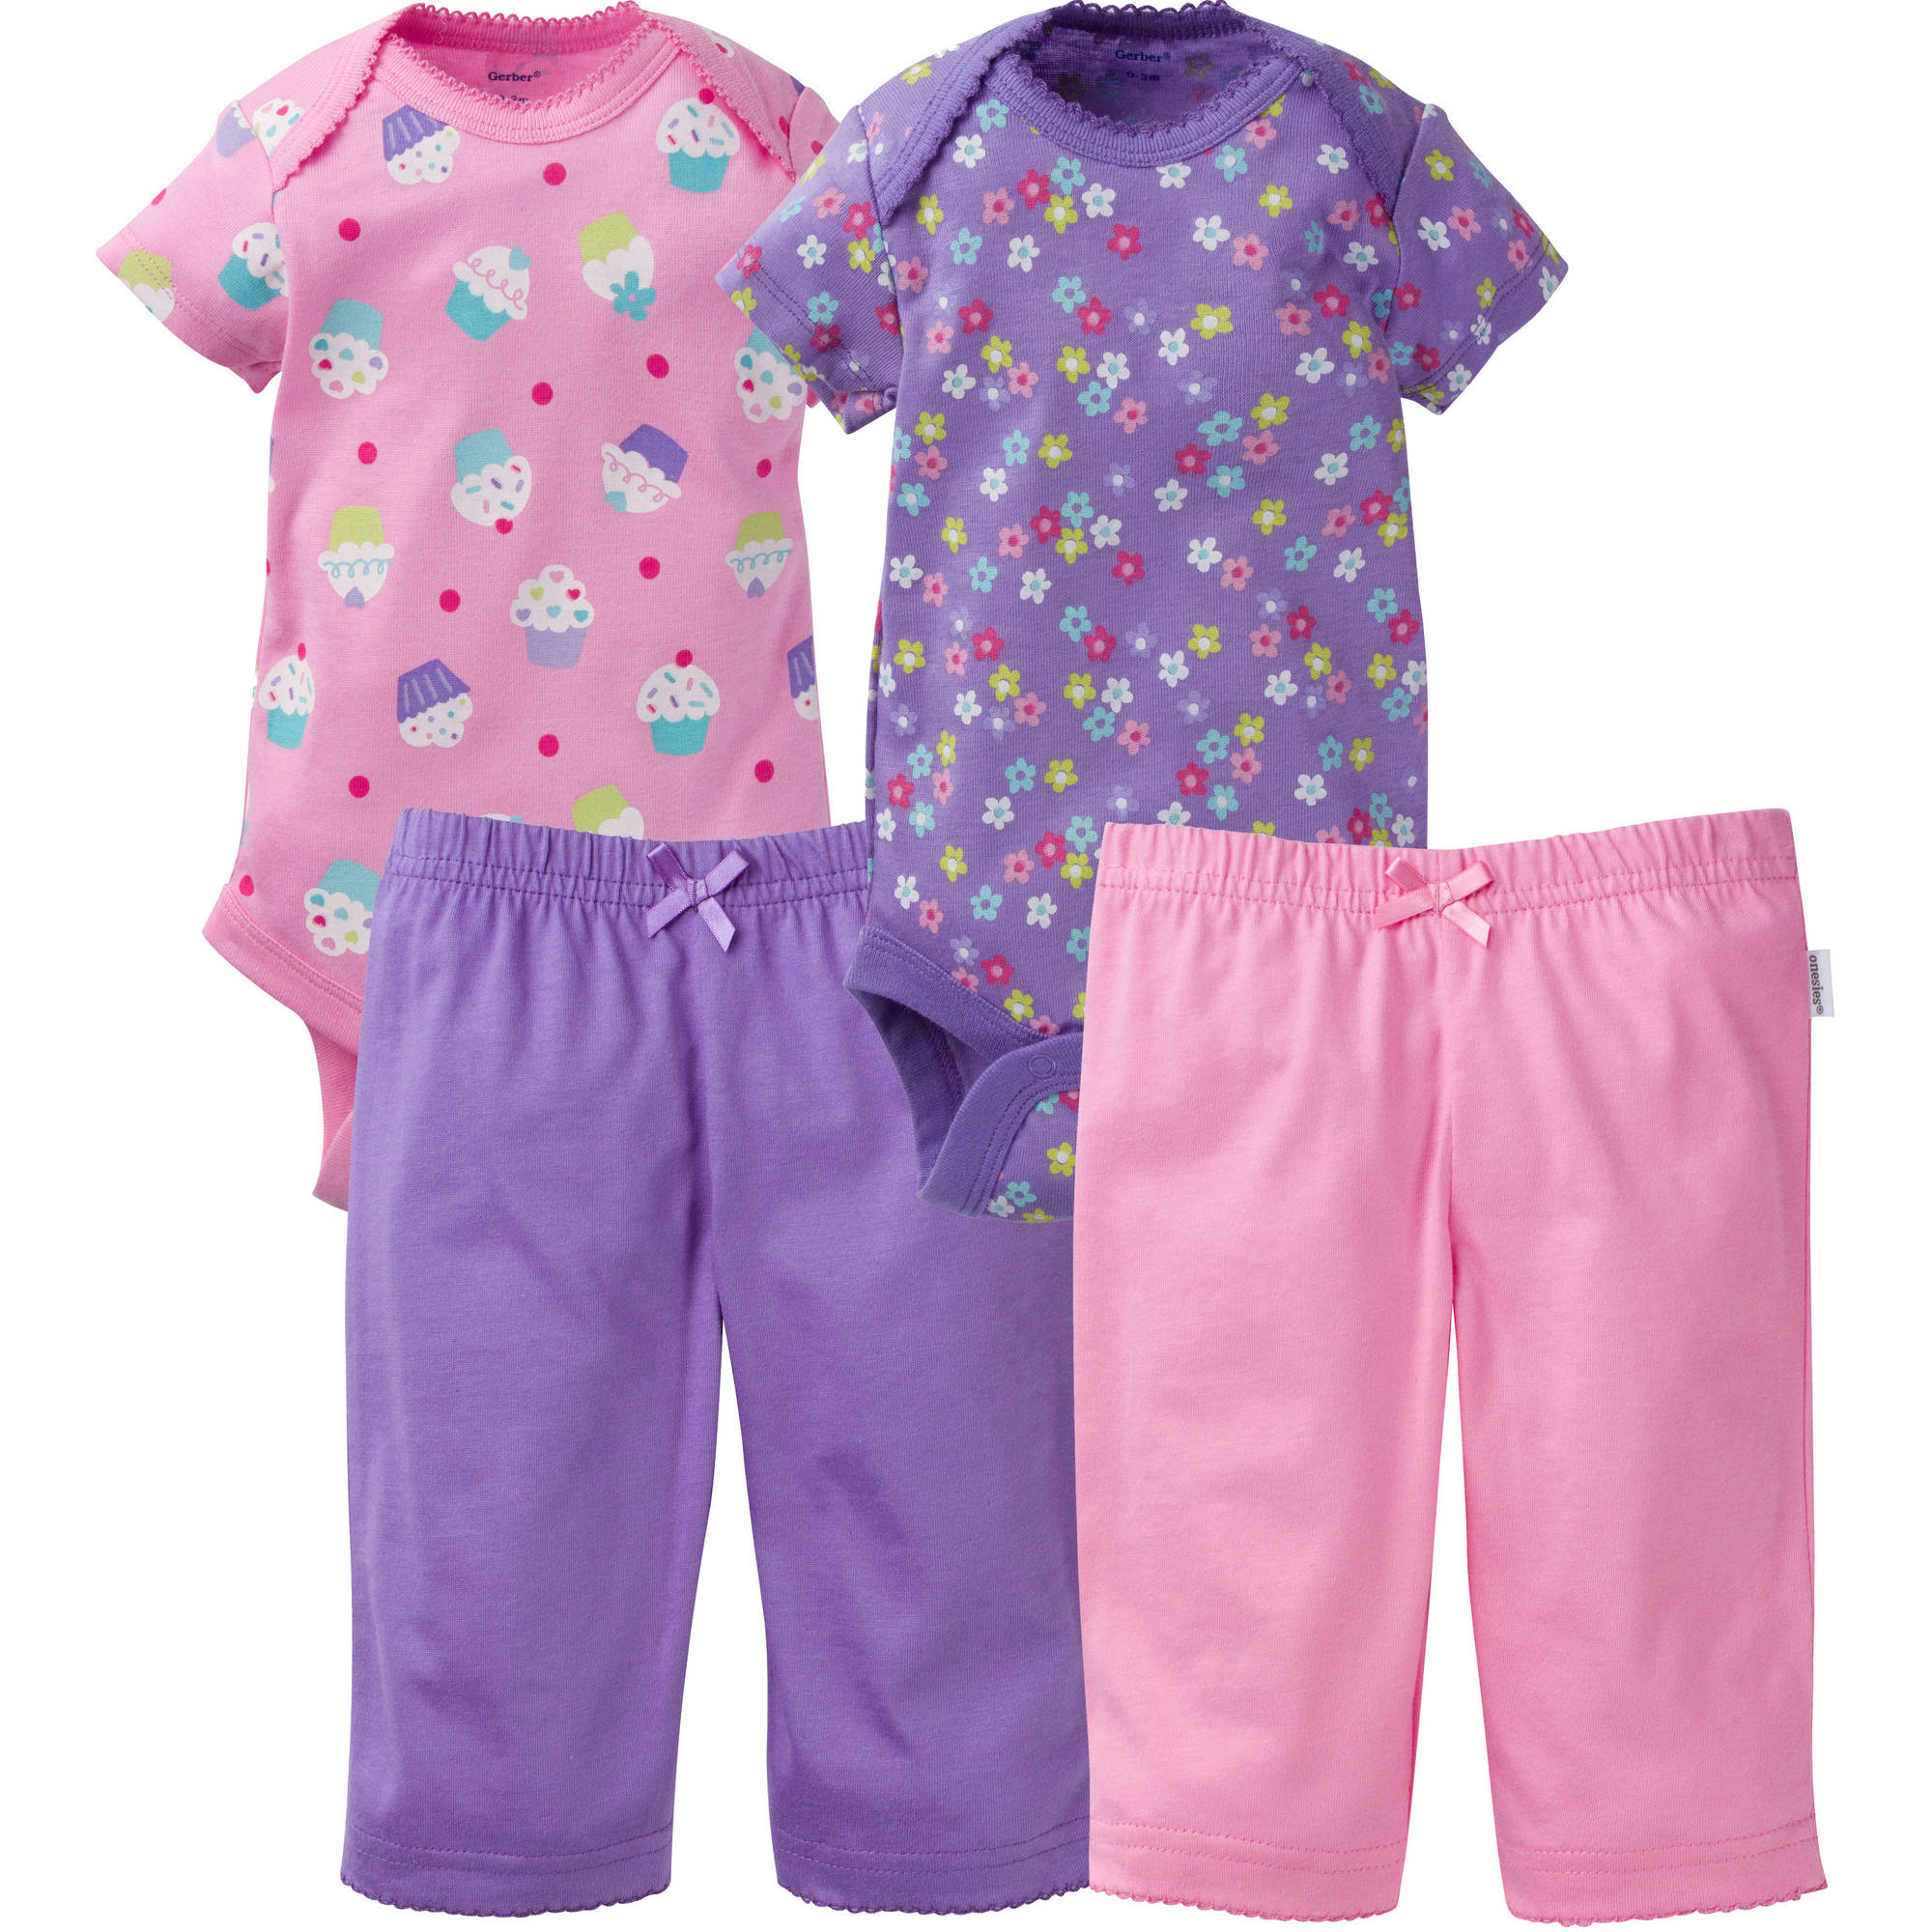 Newborn Baby Girl Layette Outfit Set, 4-Piece